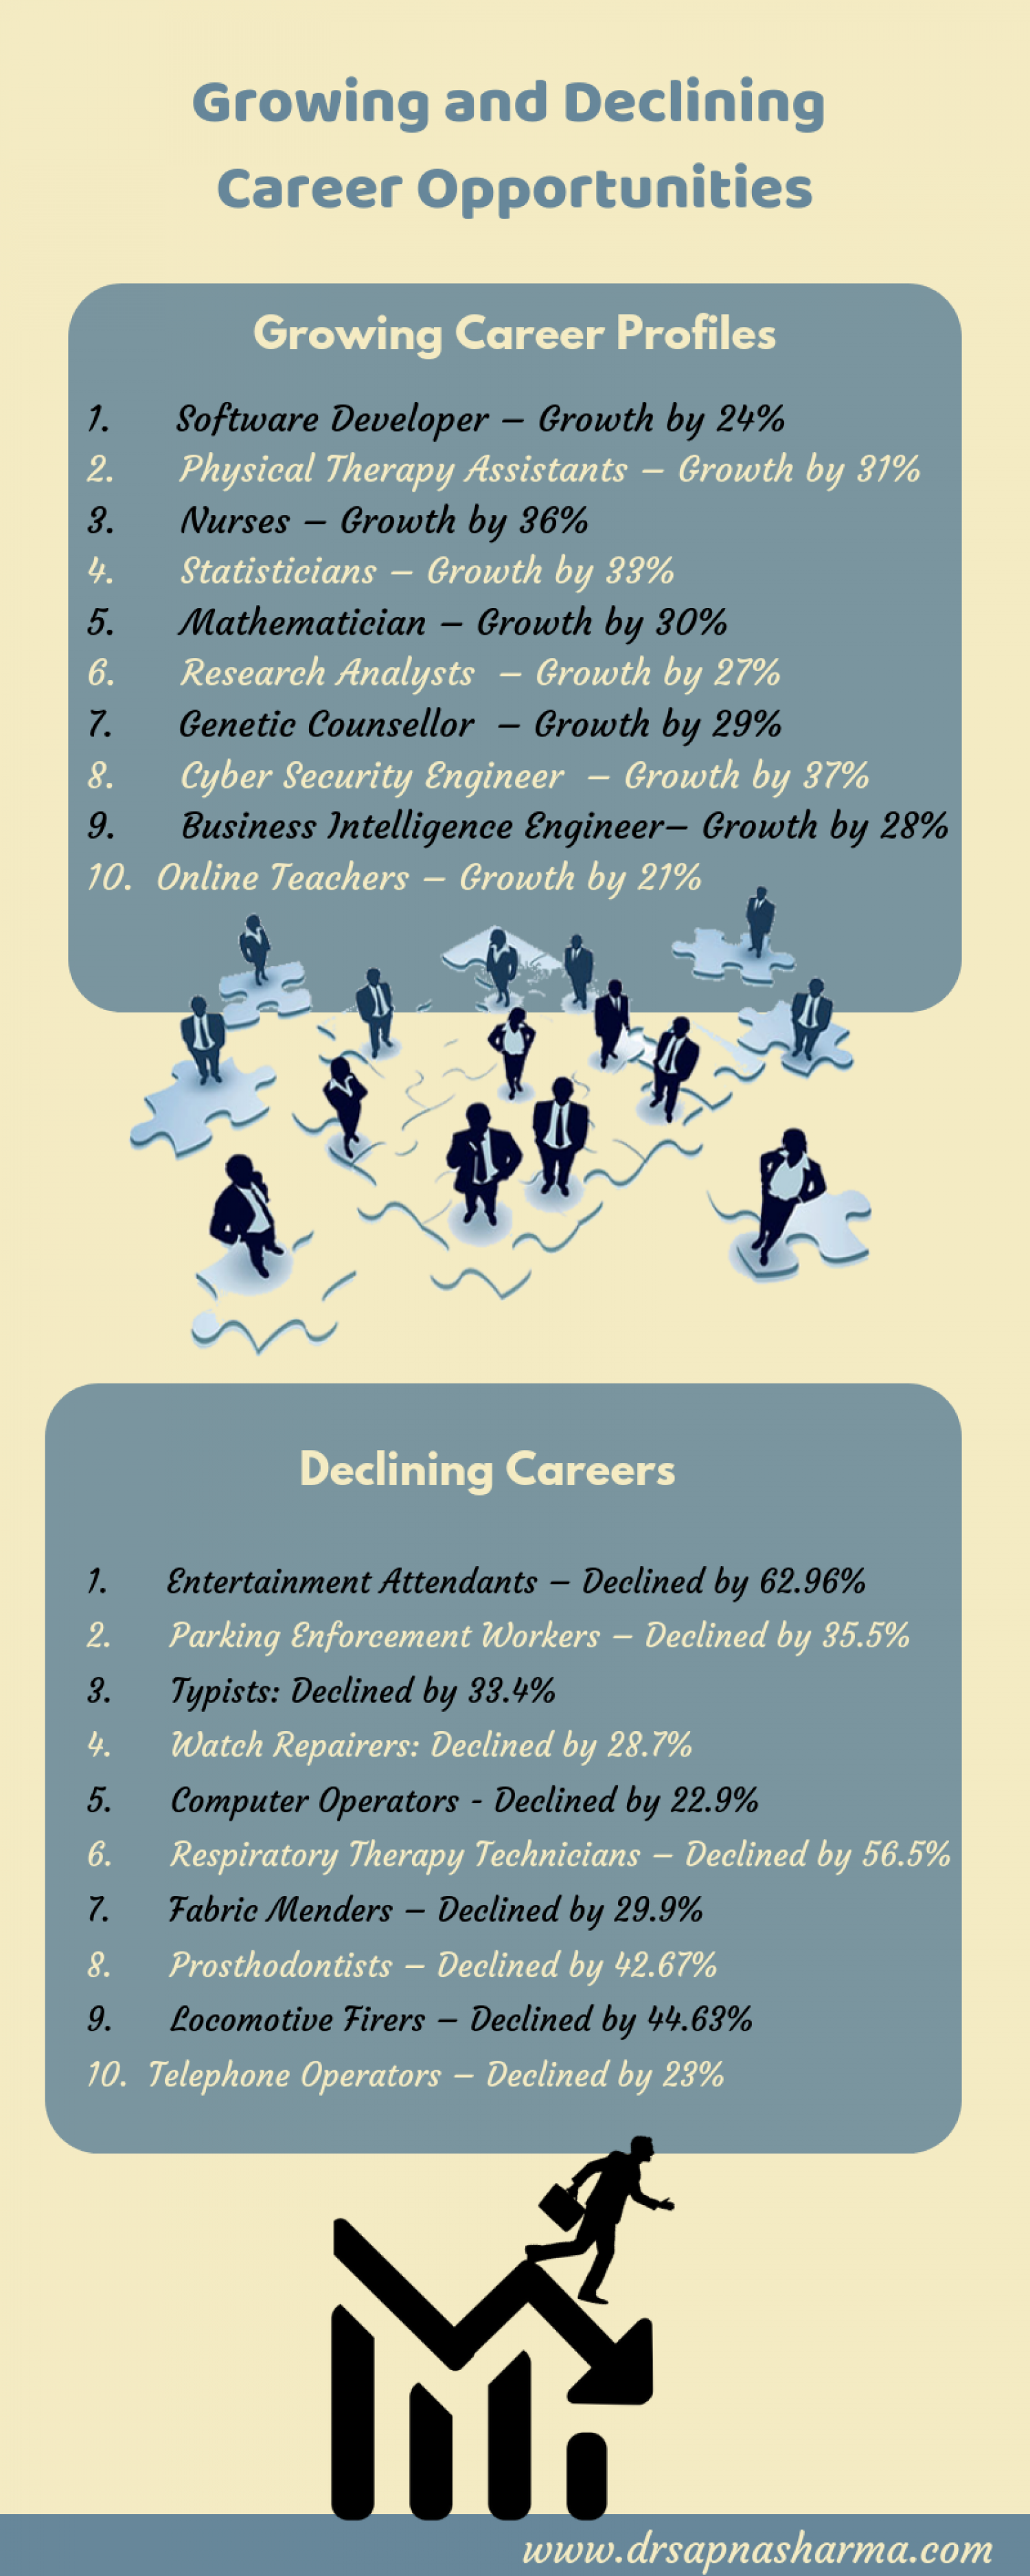 Growing and Declining Career Opportunities Infographic